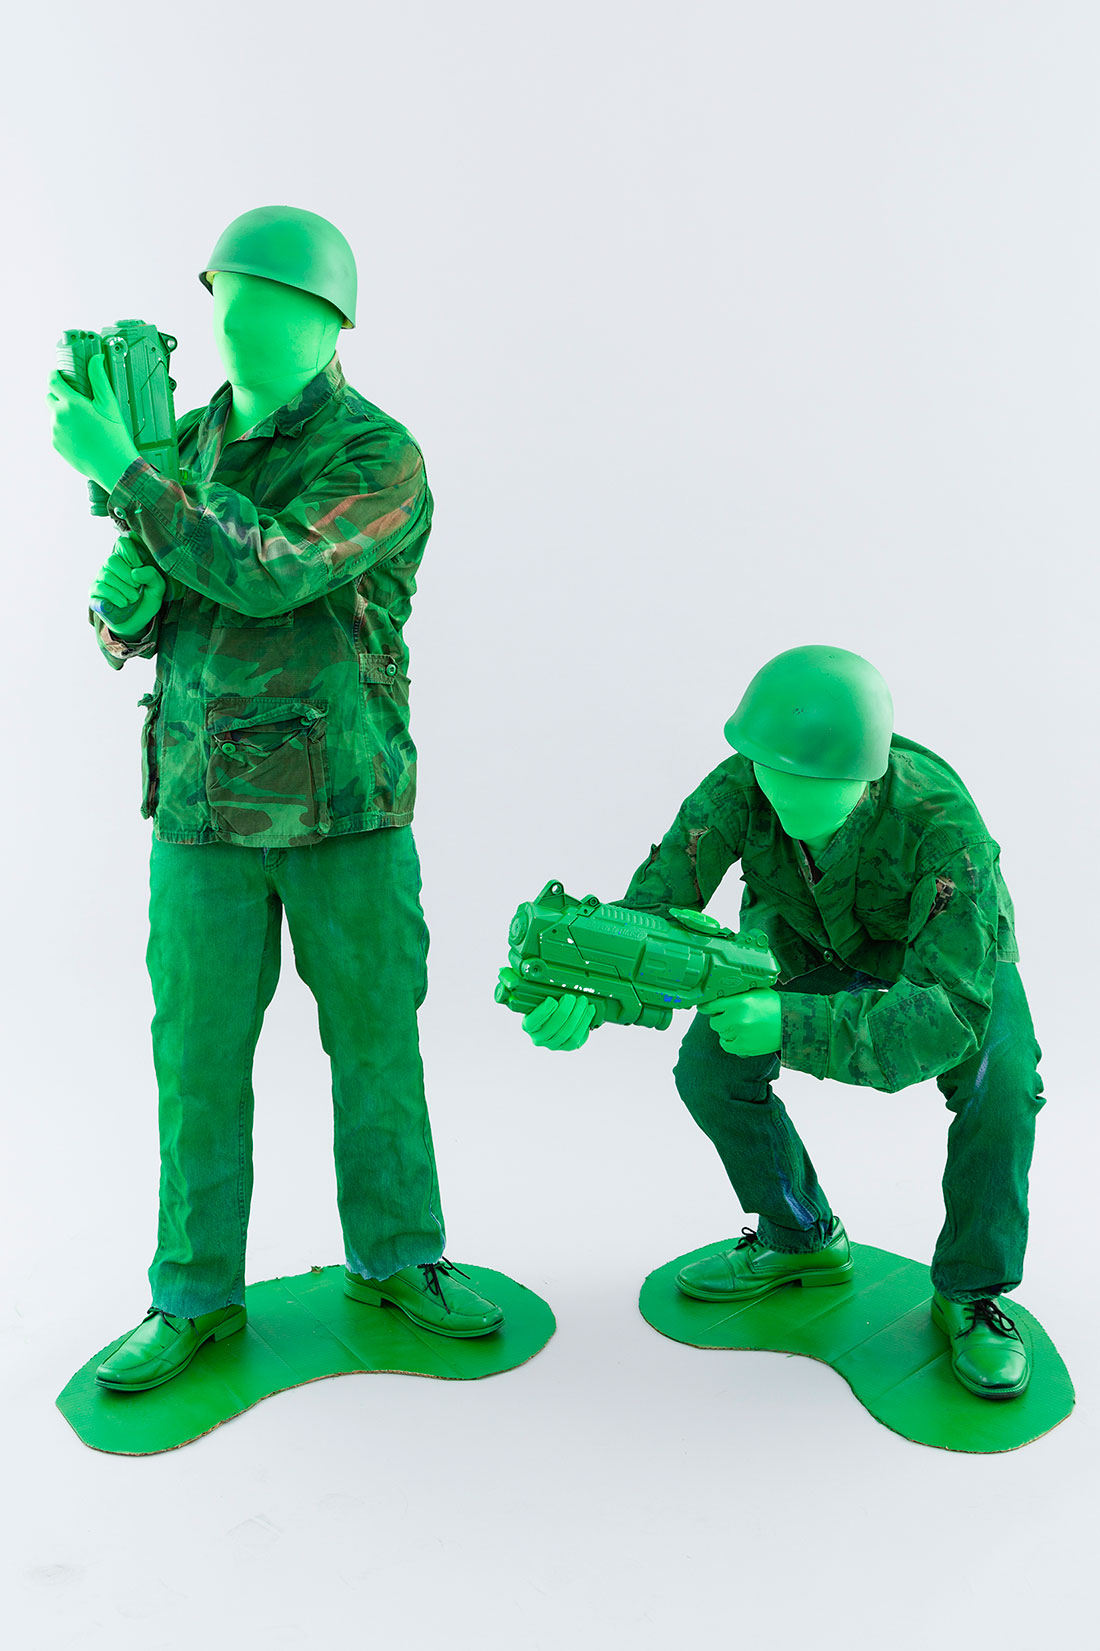 Halloween toy soldiers costumes